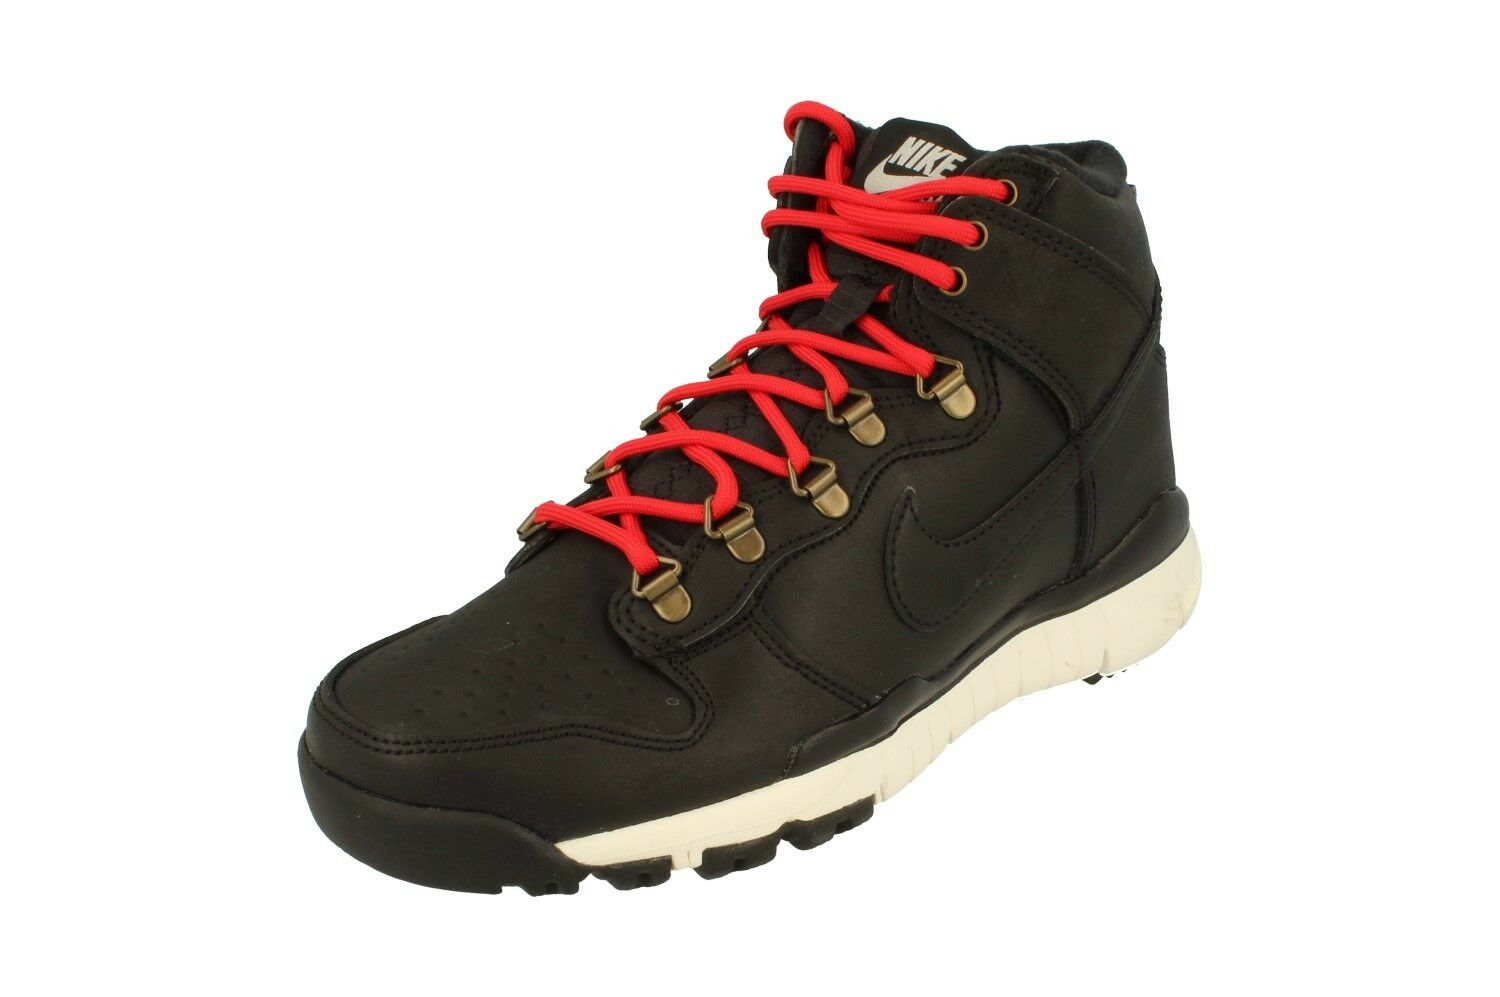 SB Dunk High Boot 806335 Mens Hi Top Trainers 806335 Boot 012 Sneakers Shoes 55e350